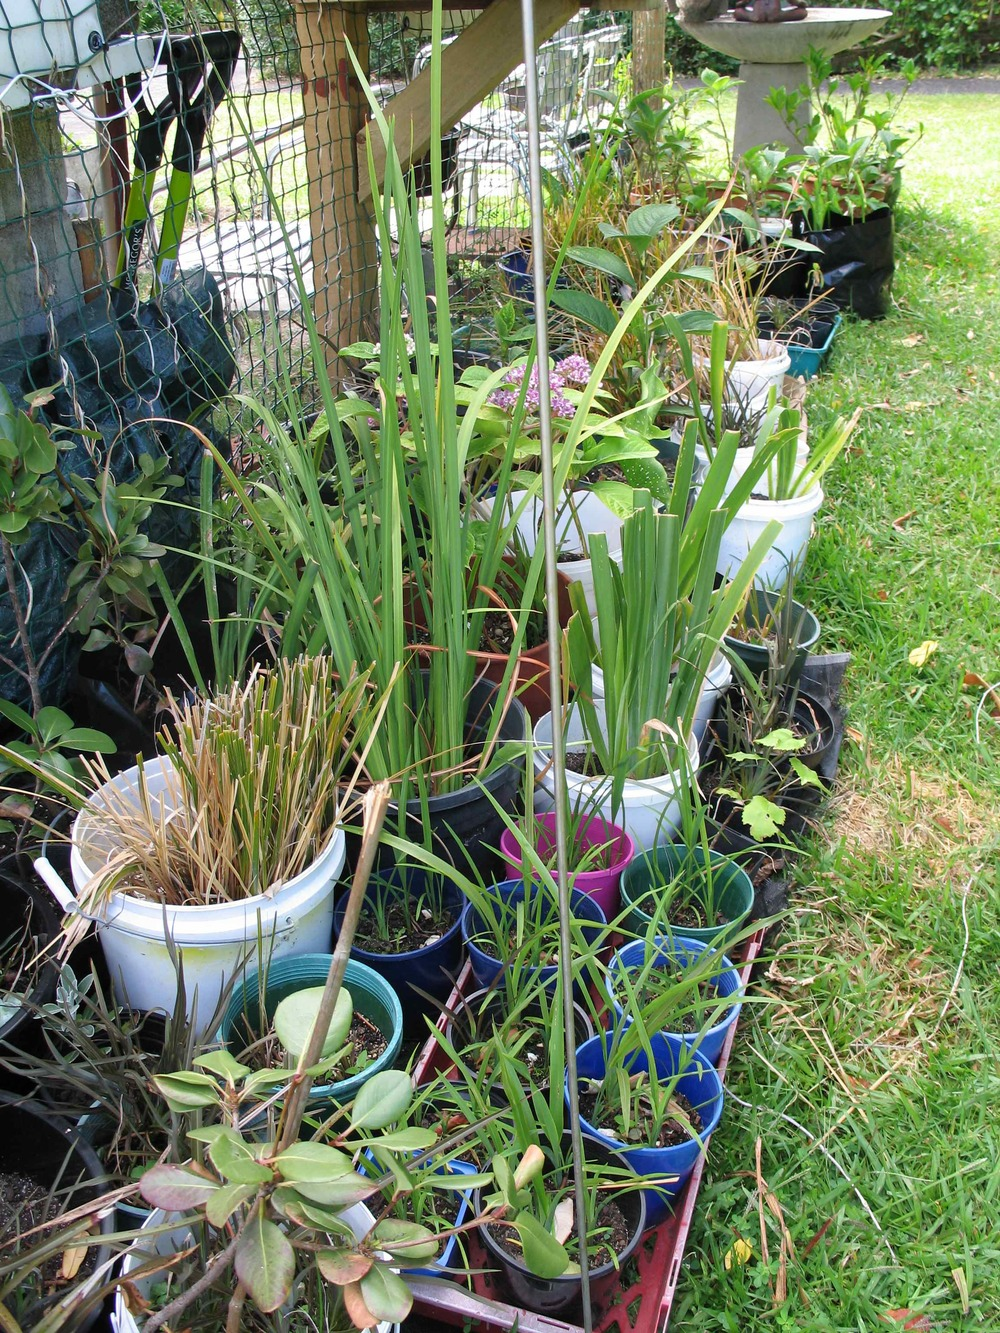 A mix of dietes, flaxes, Indian hawthorn that I grew from tiny seedlings I found in a park, brachyglottis and dichroa (a form of hydrangea) cuttings. These are just a few of the plants I have in my nursery waiting to go into my new garden.